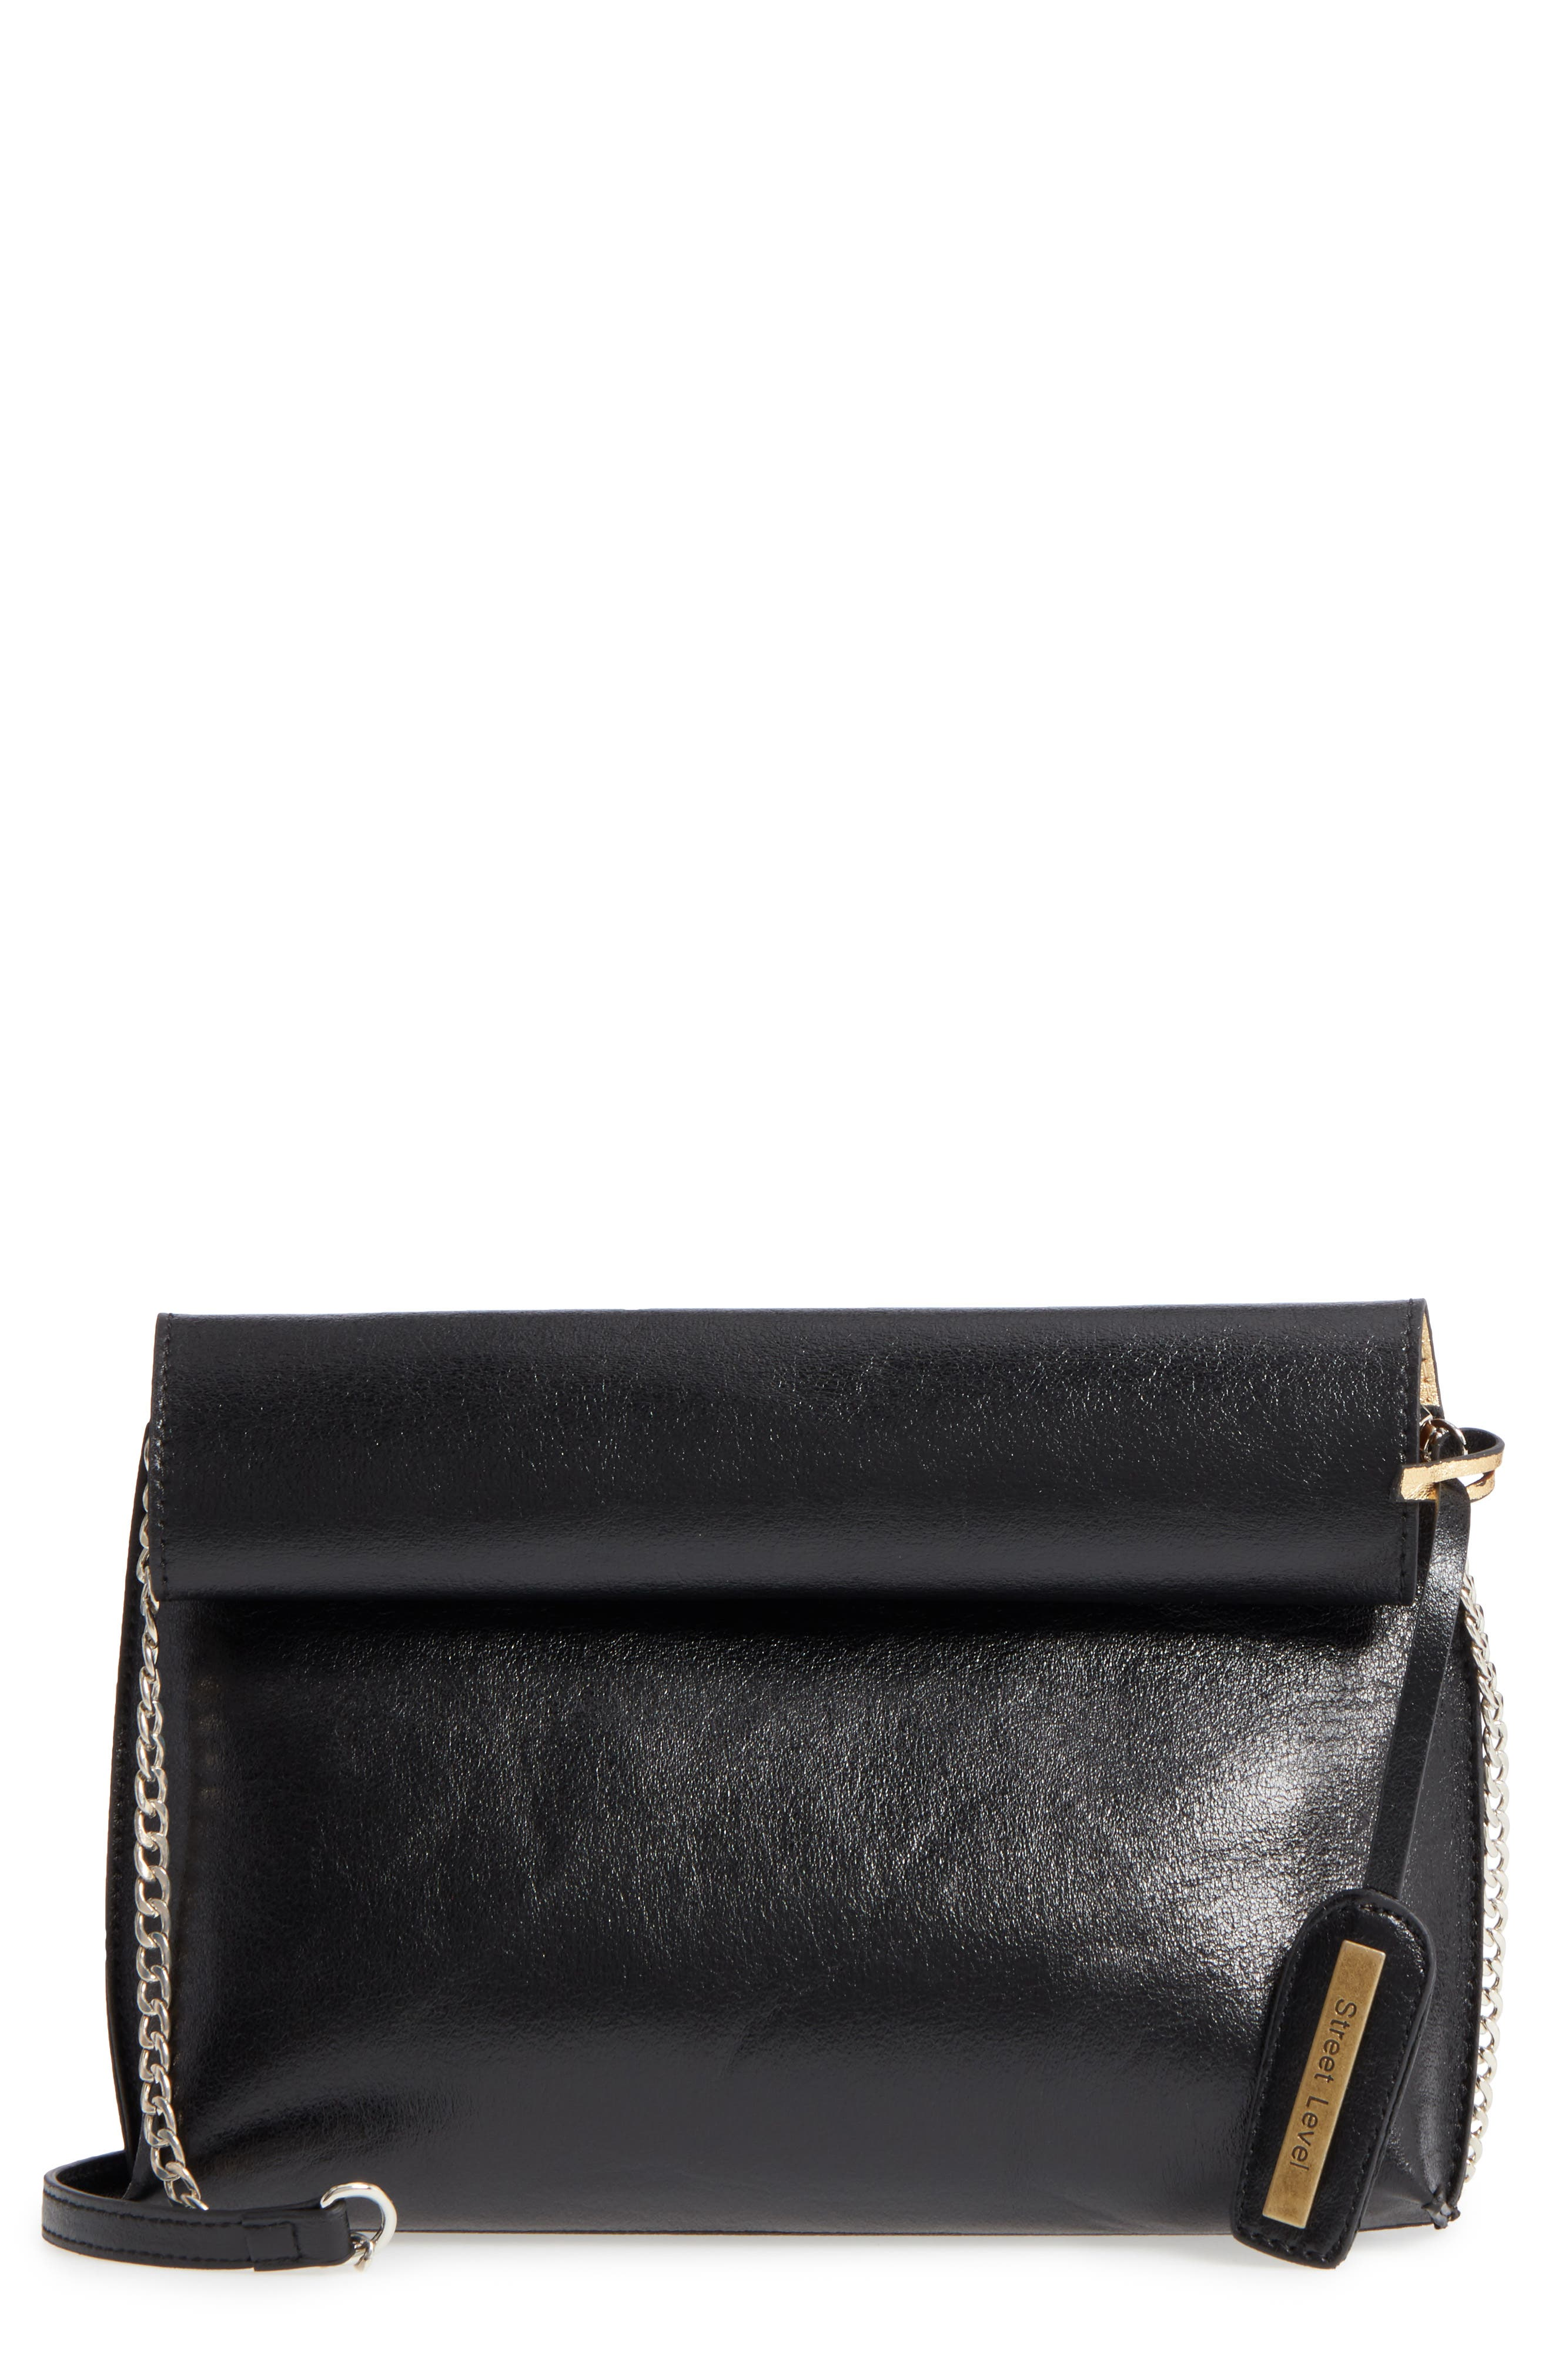 Street Level Rolltop Faux Leather Clutch